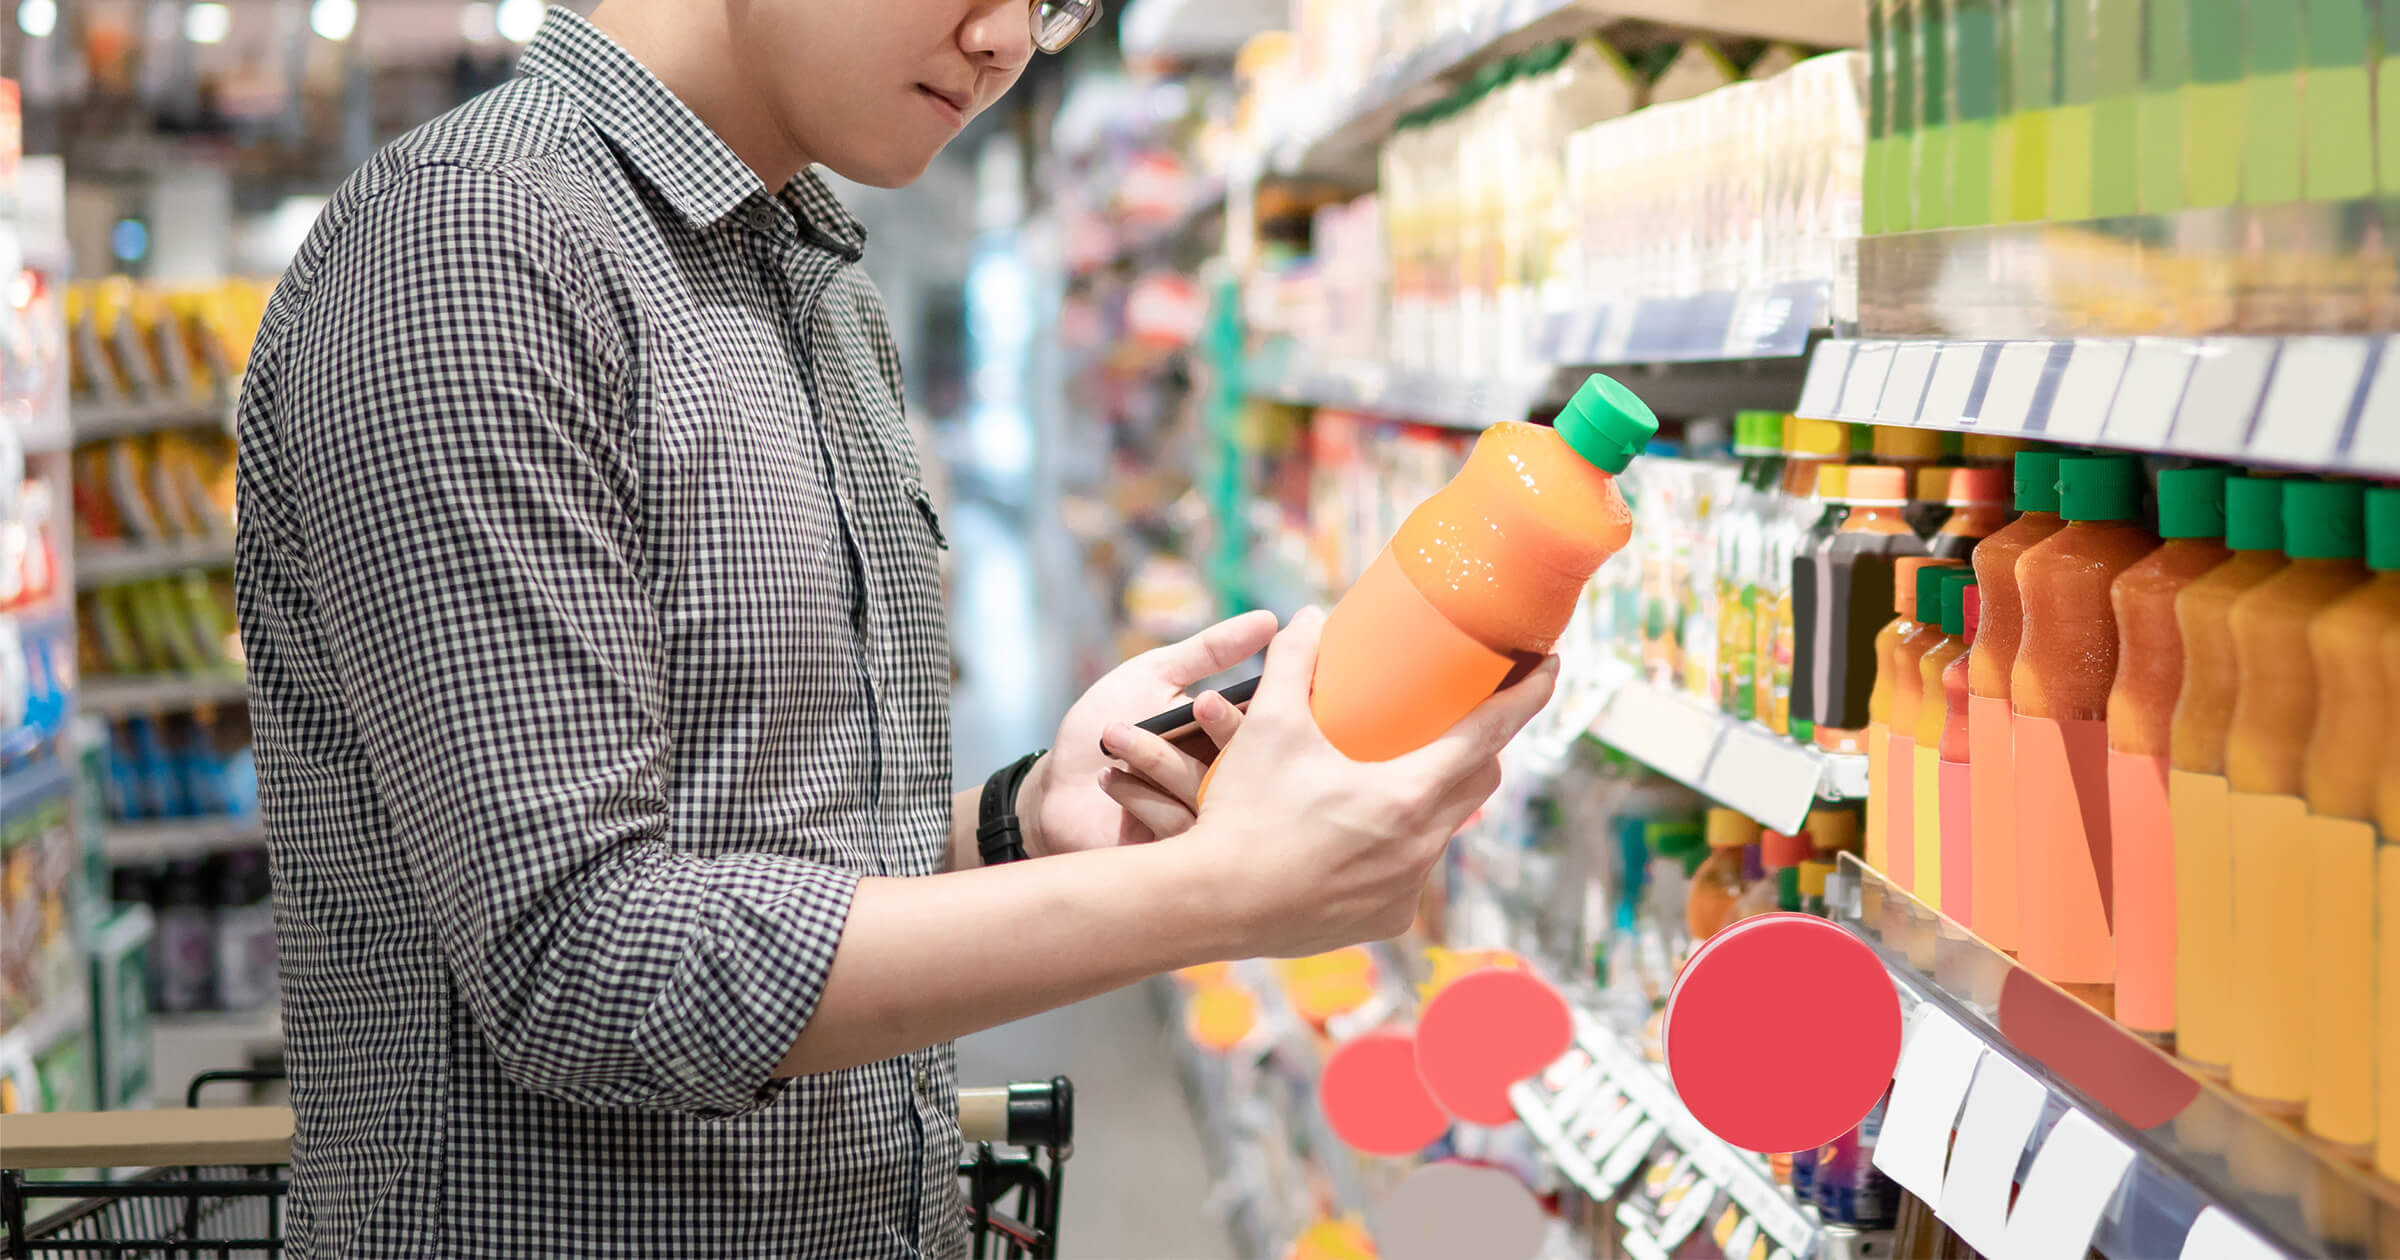 A Huge Ecommerce Opportunity for Large CPG Brands